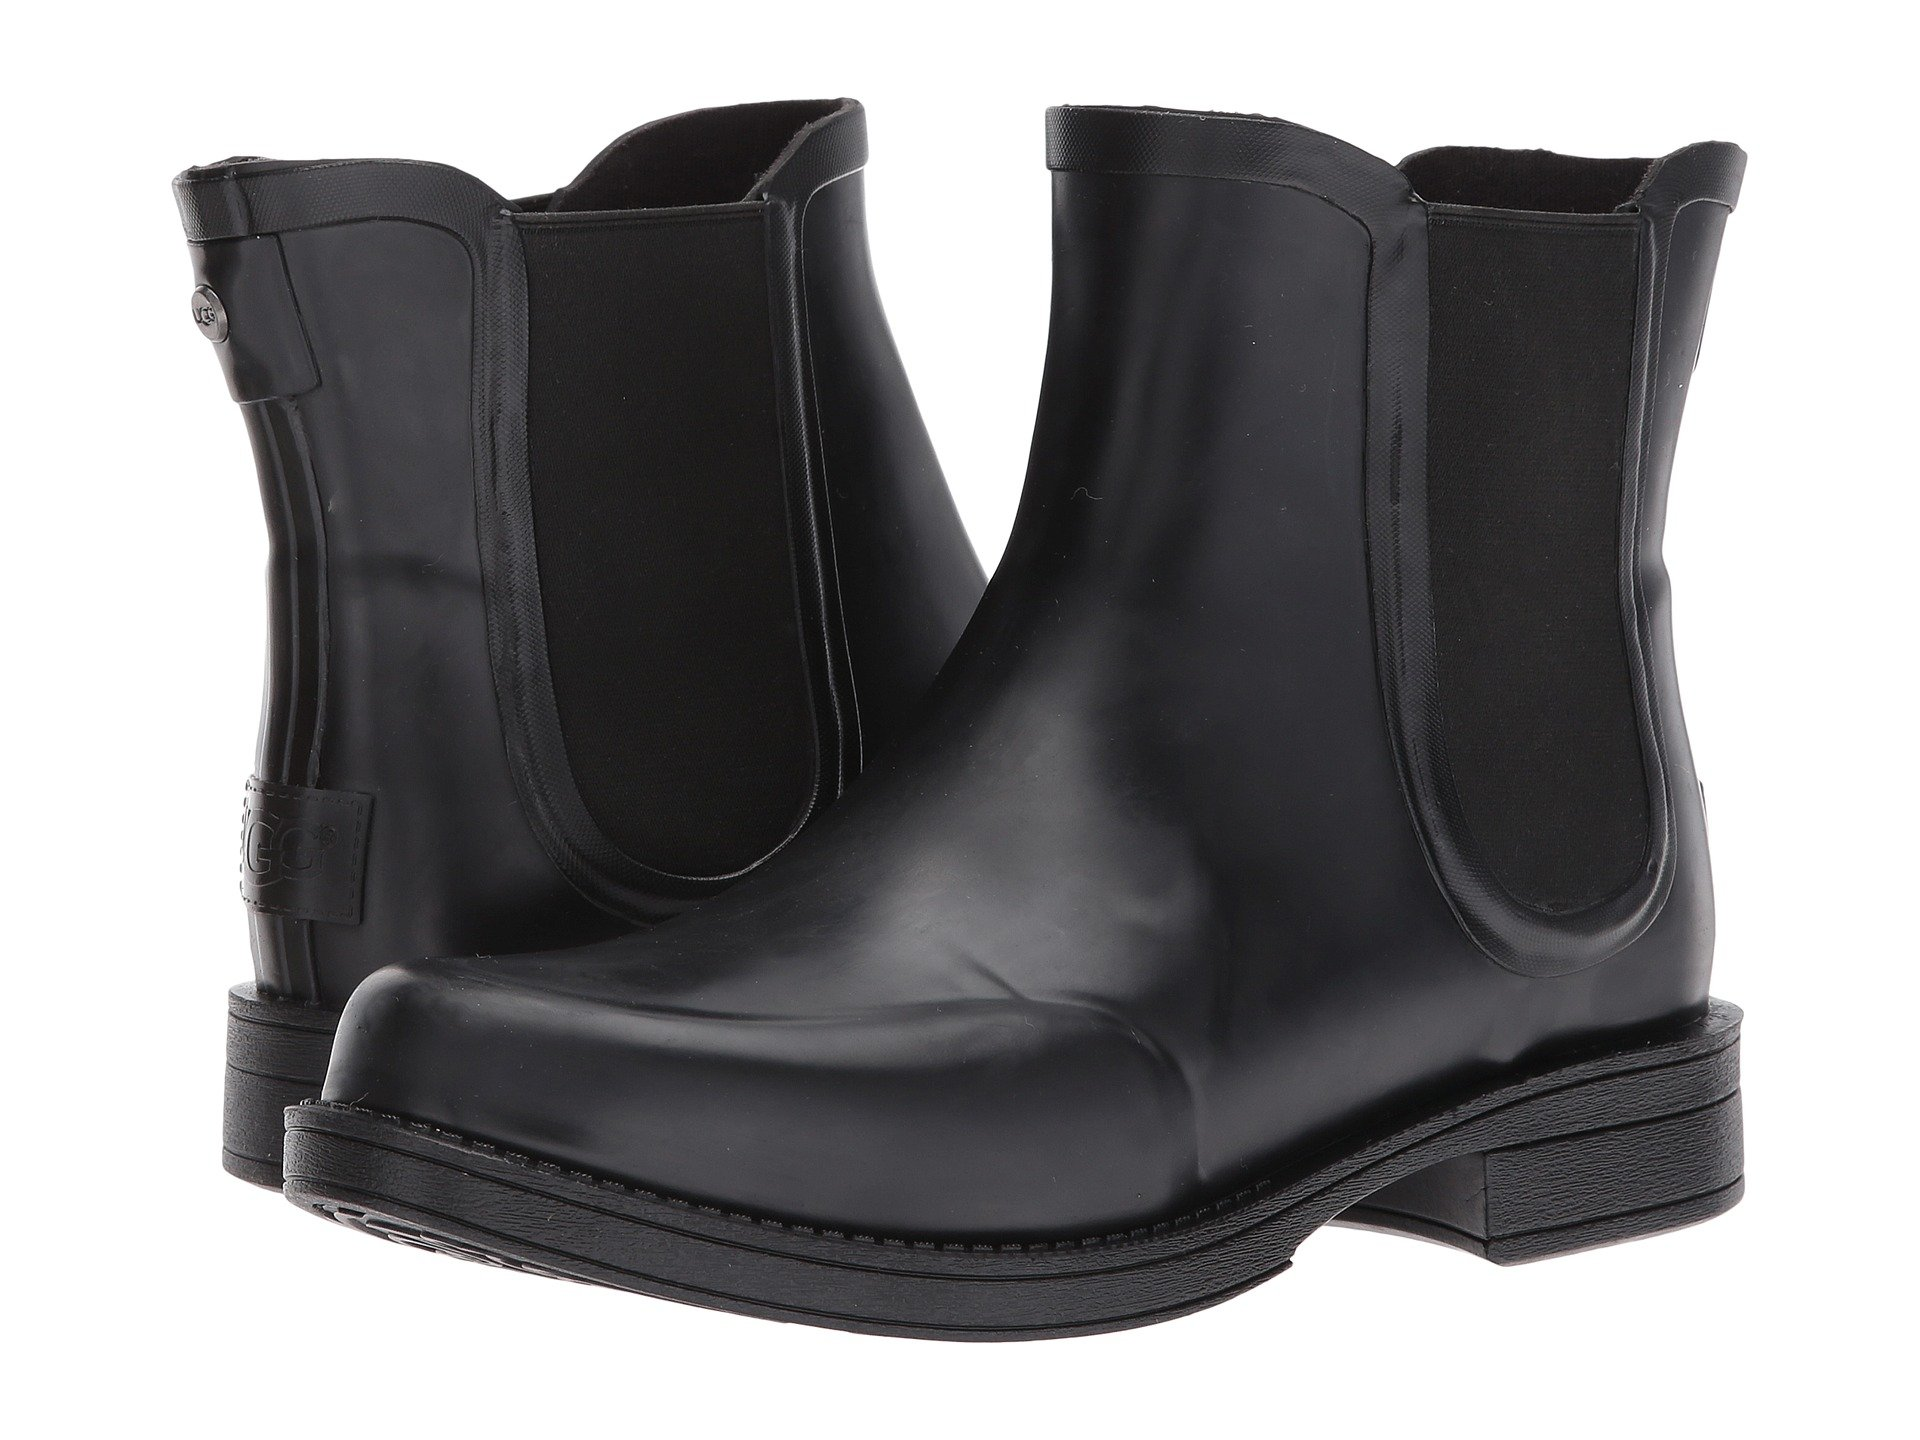 Womens Boots UGG Dawn Black Leather